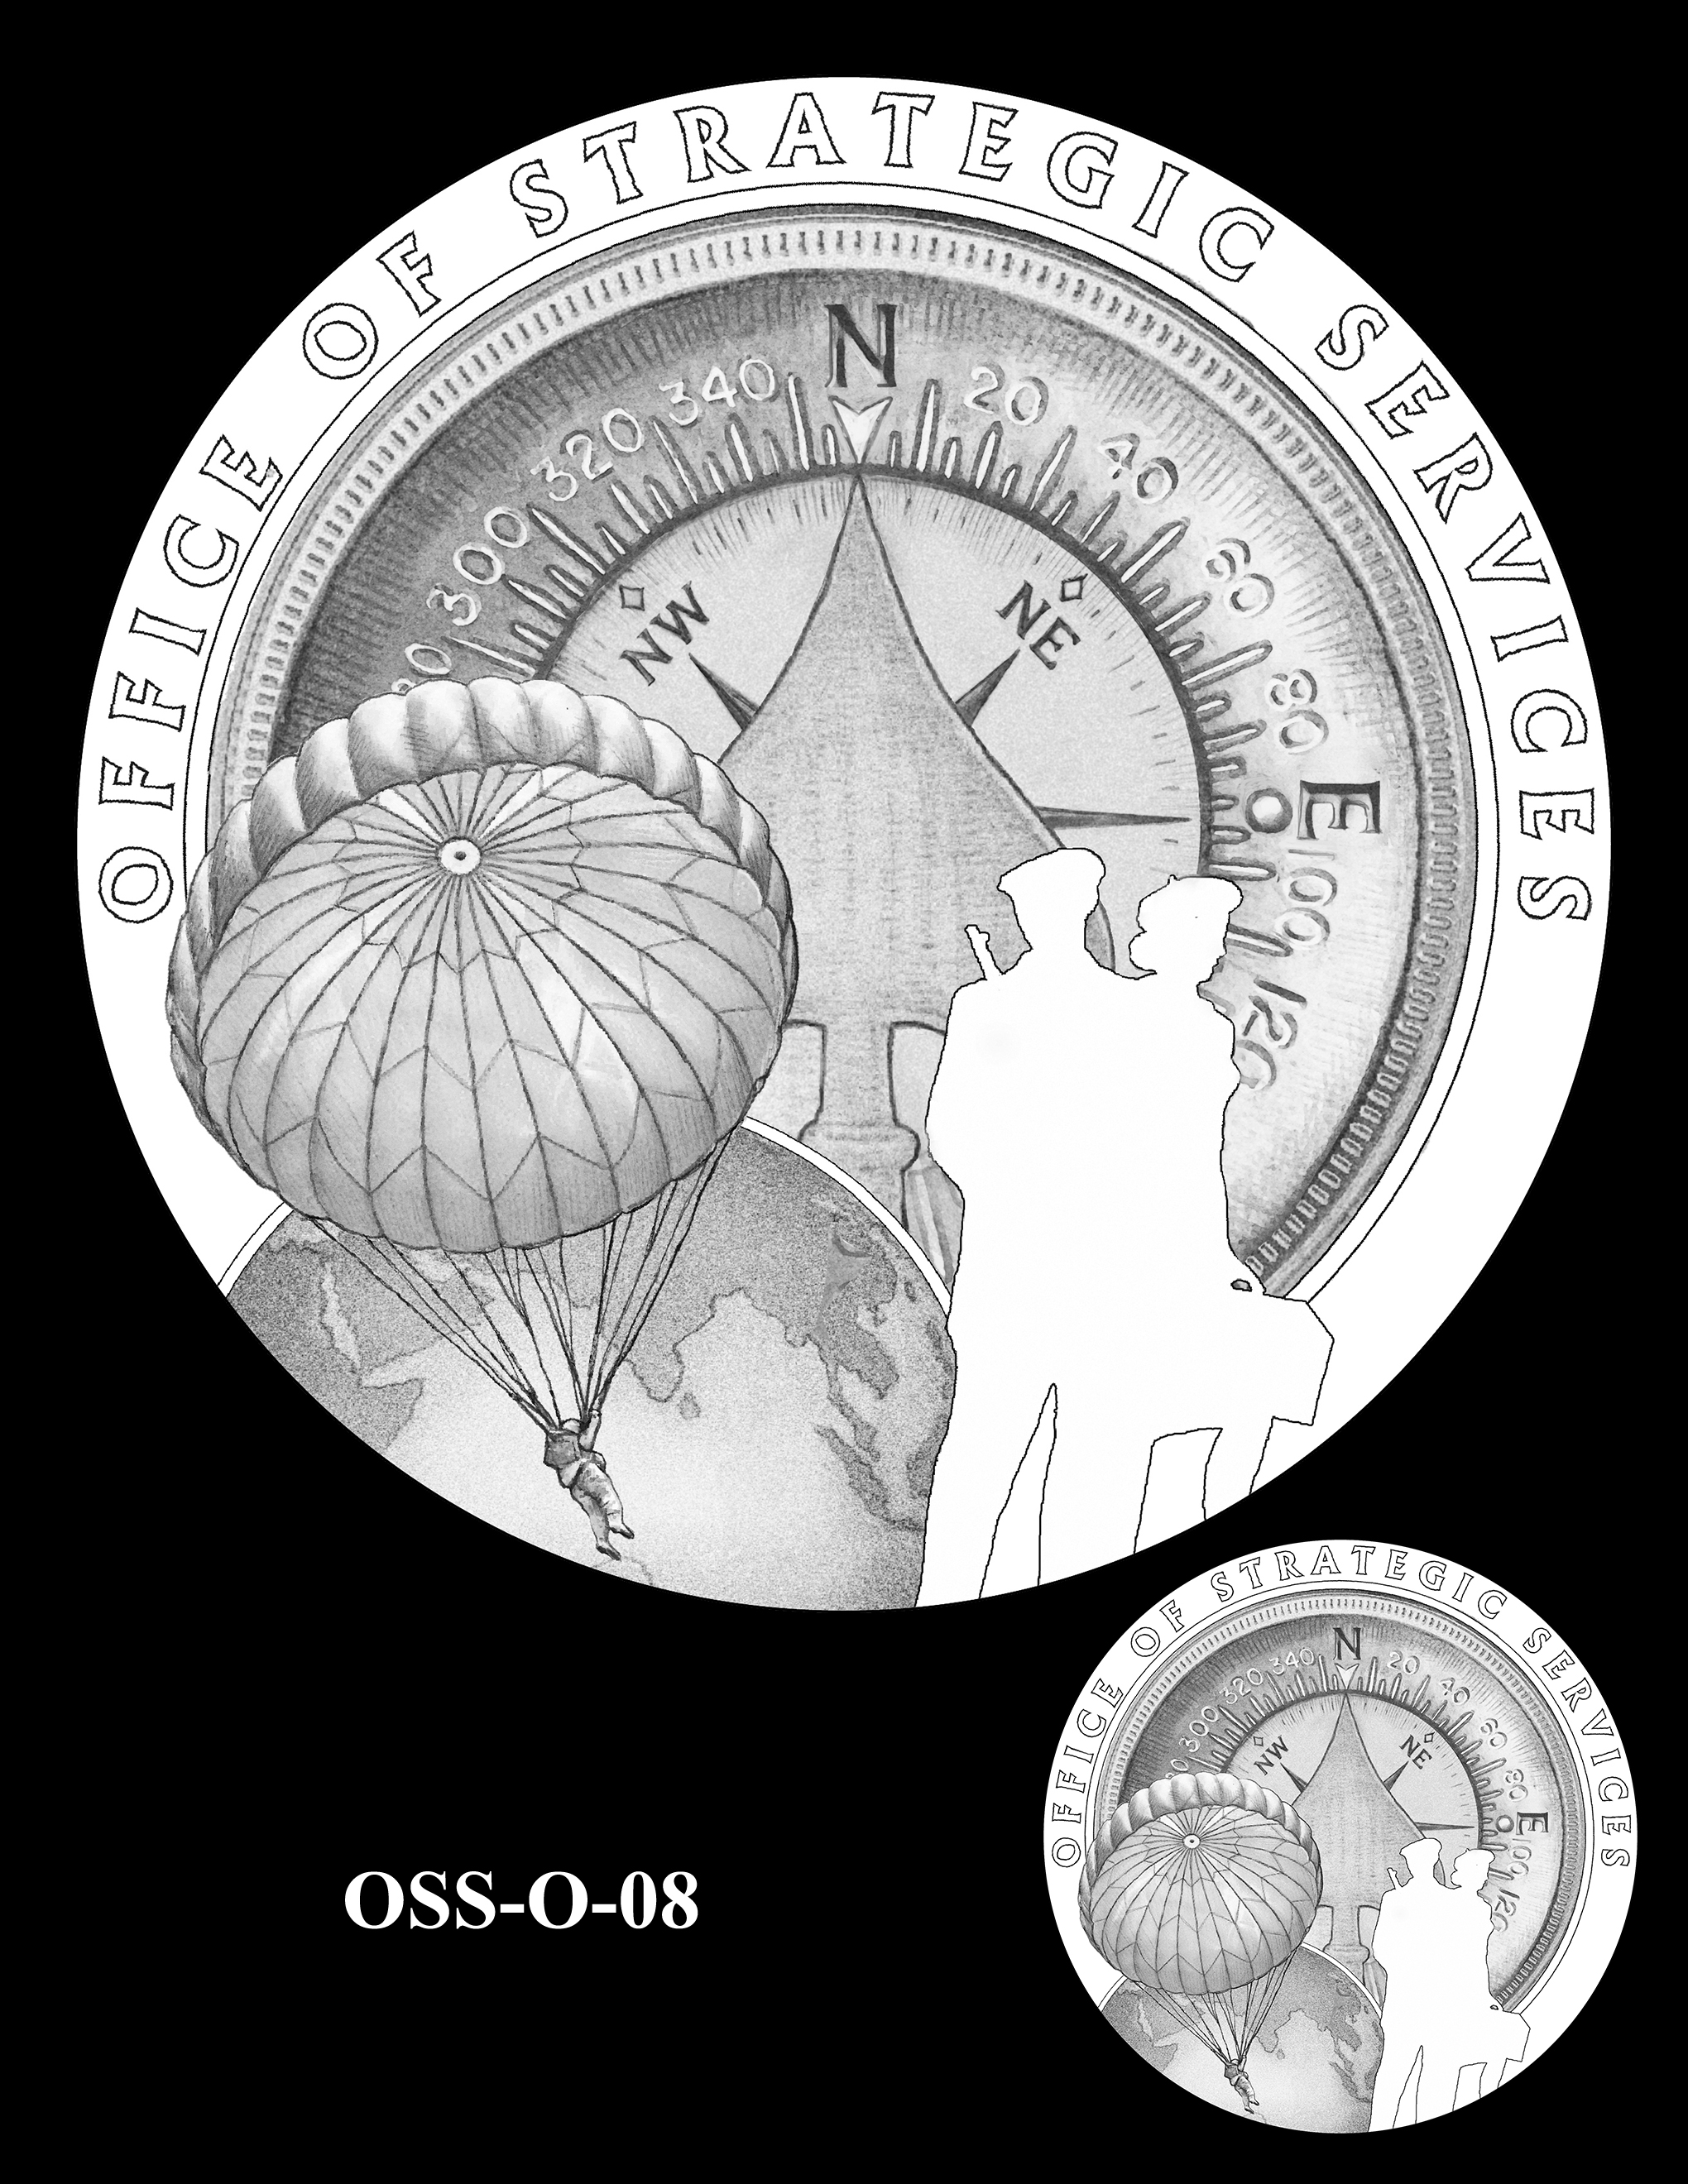 OSS-O-08 -- Office of Strategic Services Congressional Gold Medal